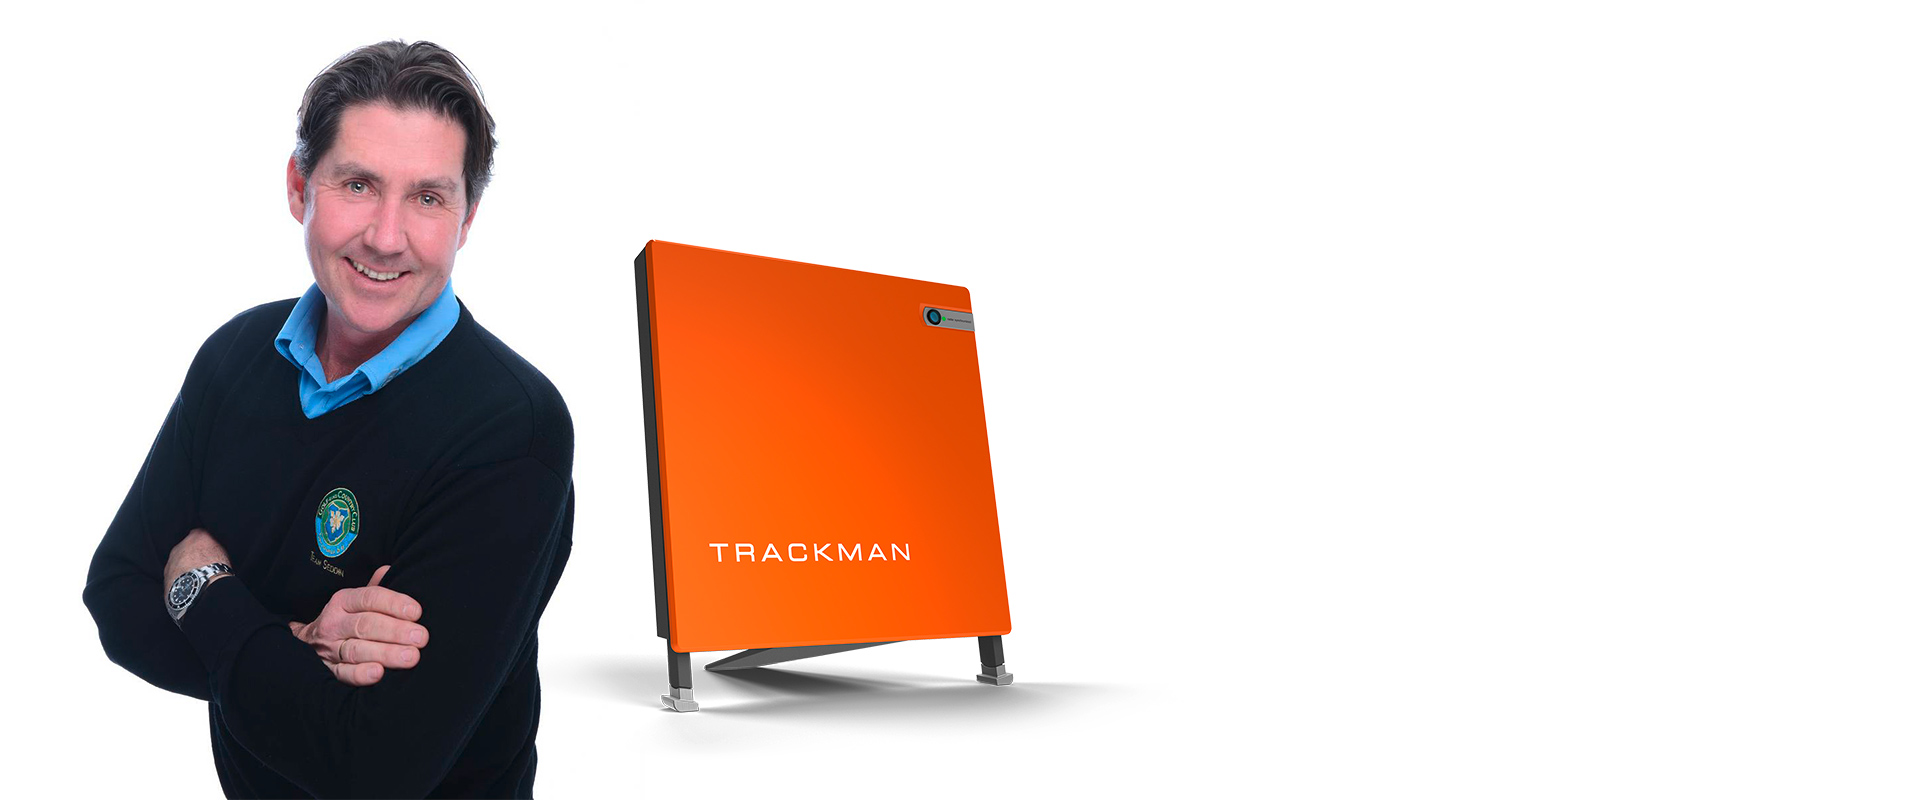 Paul Archbold uses Trackman